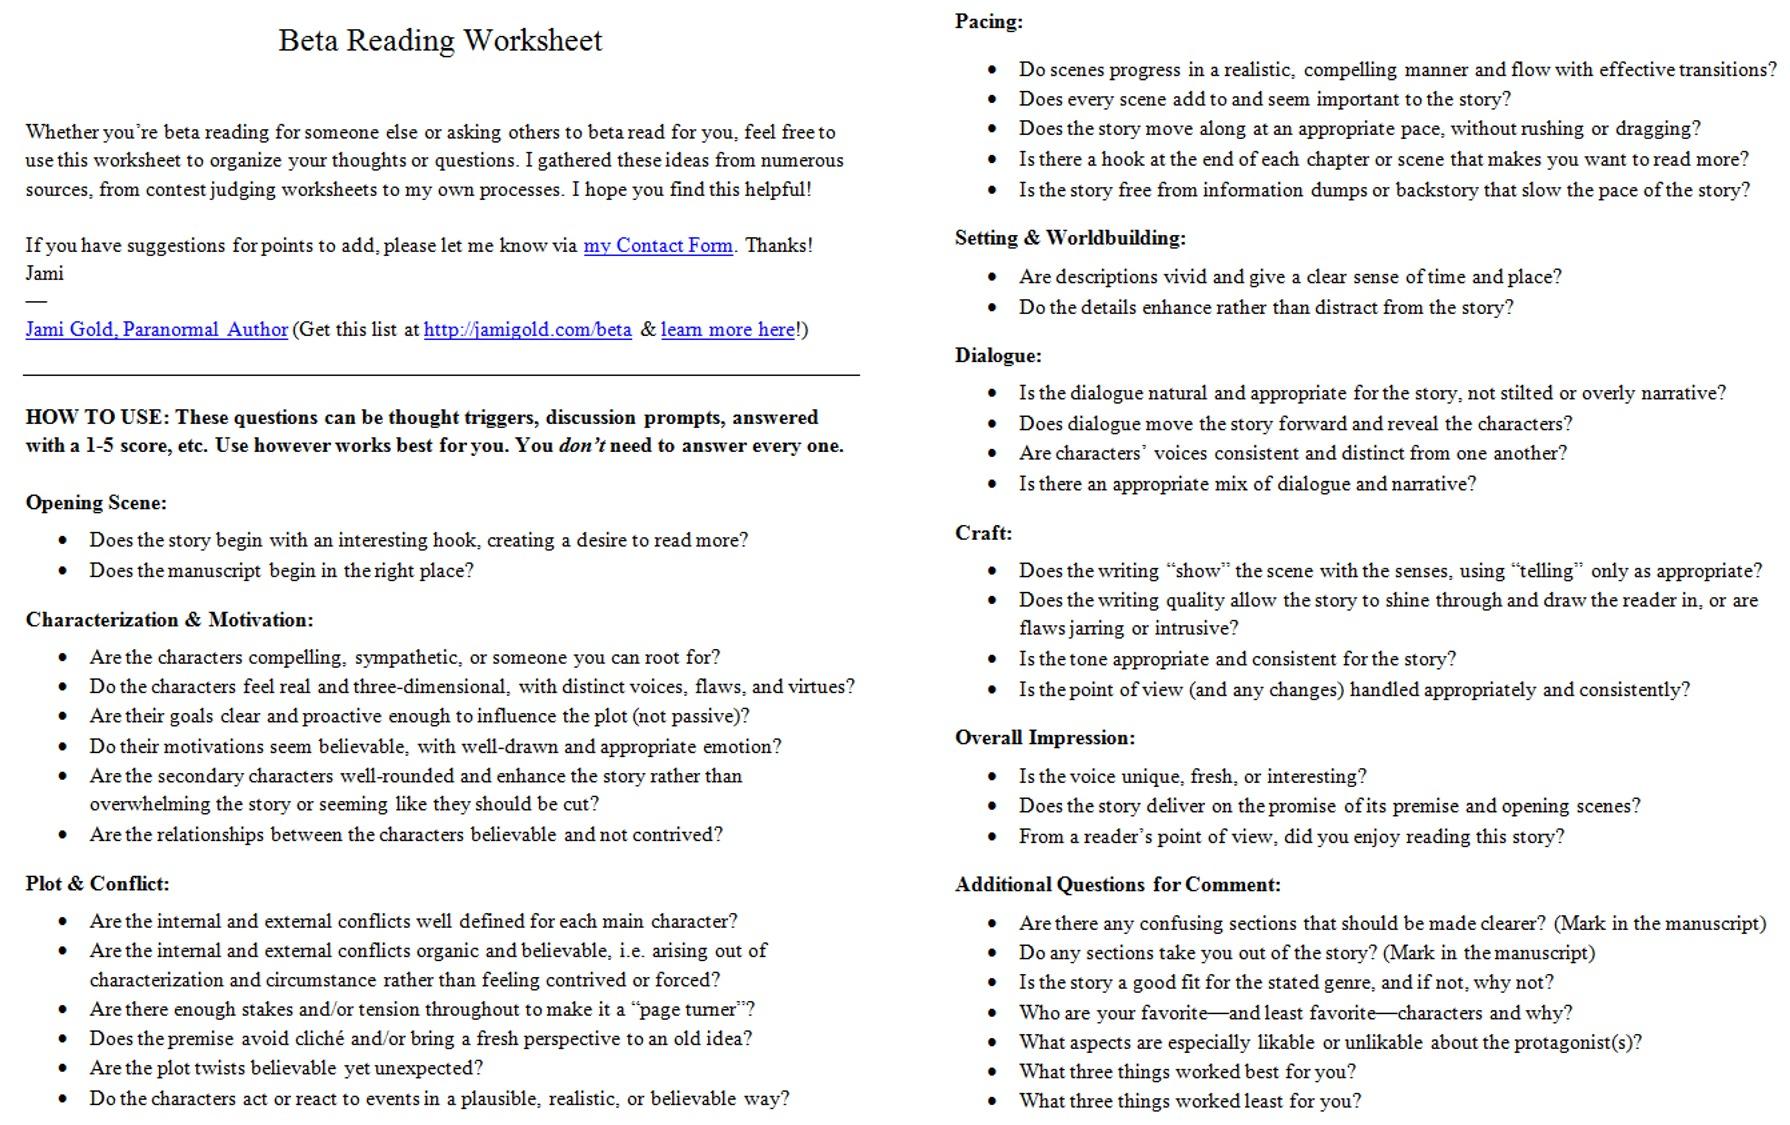 Aldiablosus  Gorgeous Worksheets For Writers  Jami Gold Paranormal Author With Fair Screen Shot Of The Twopage Beta Reading Worksheet With Beauteous Free Printable Reading Worksheets For Rd Grade Also  Digit Addition Without Regrouping Worksheet In Addition Letter A Worksheets Free And Currency Worksheets As Well As Future Tense Spanish Practice Worksheets Additionally Quotation Mark Worksheets Th Grade From Jamigoldcom With Aldiablosus  Fair Worksheets For Writers  Jami Gold Paranormal Author With Beauteous Screen Shot Of The Twopage Beta Reading Worksheet And Gorgeous Free Printable Reading Worksheets For Rd Grade Also  Digit Addition Without Regrouping Worksheet In Addition Letter A Worksheets Free From Jamigoldcom